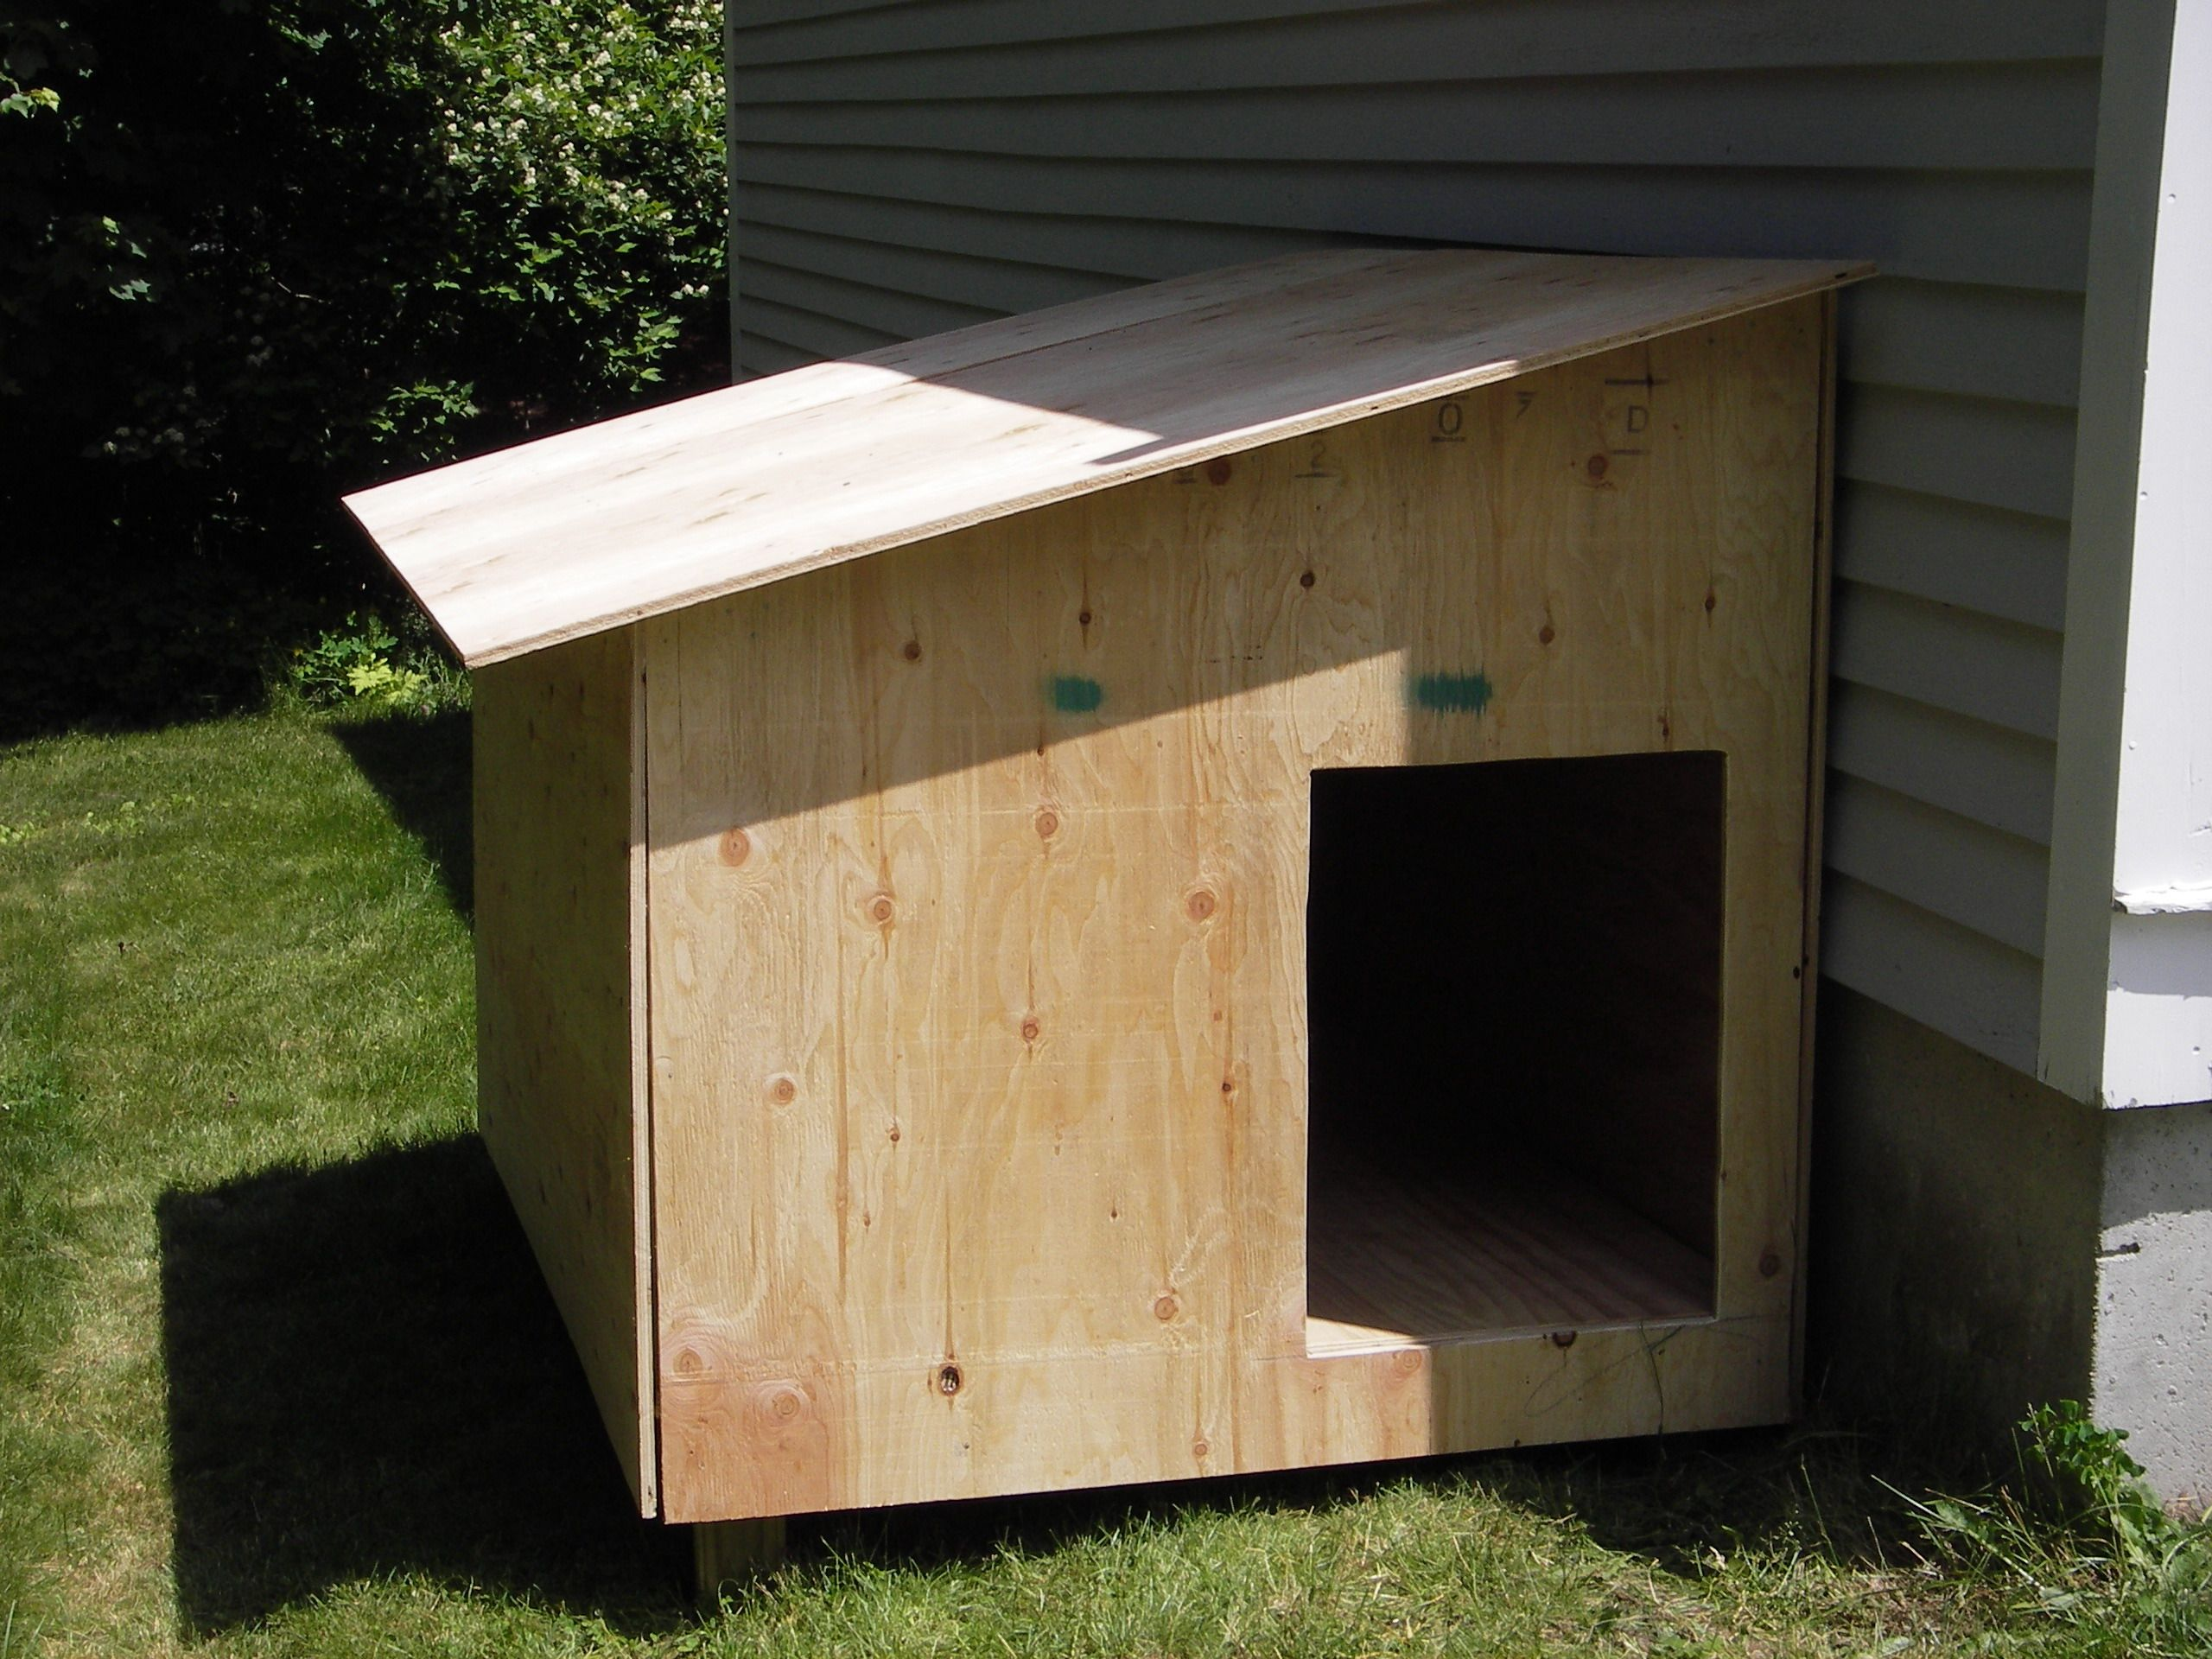 dog house plans  dog house  the house has gone to the dogs  - dog house plans  dog house